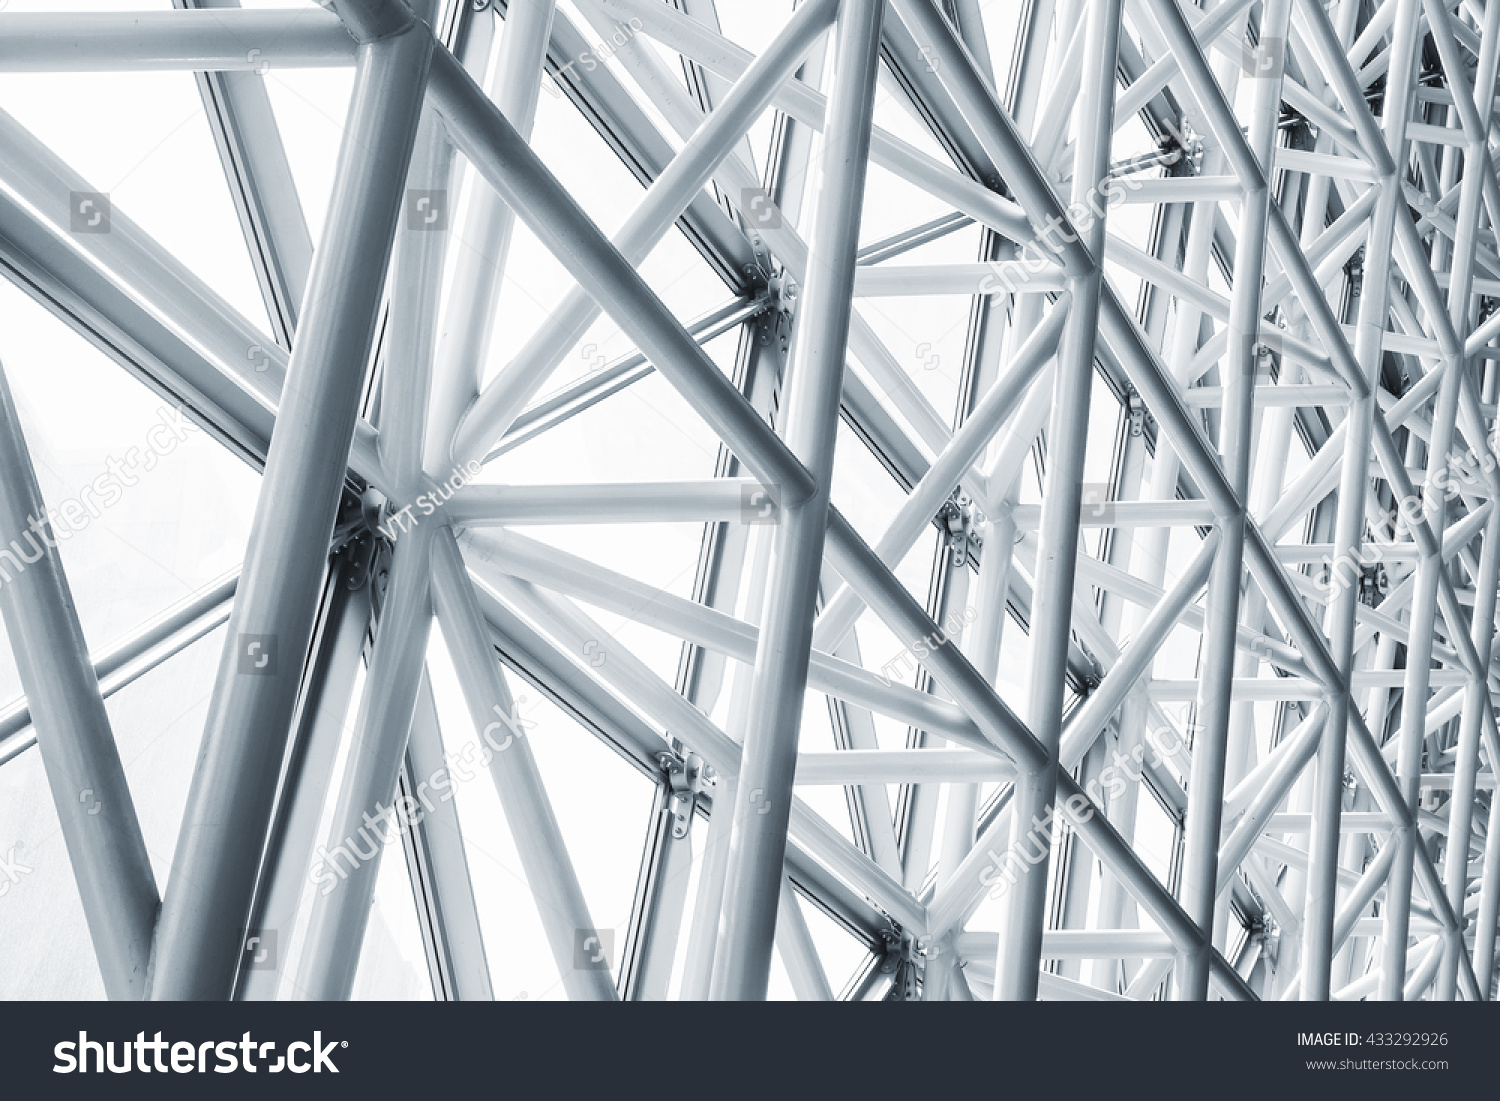 Architecture detail modern glass facade metal stock photo for Structure photography